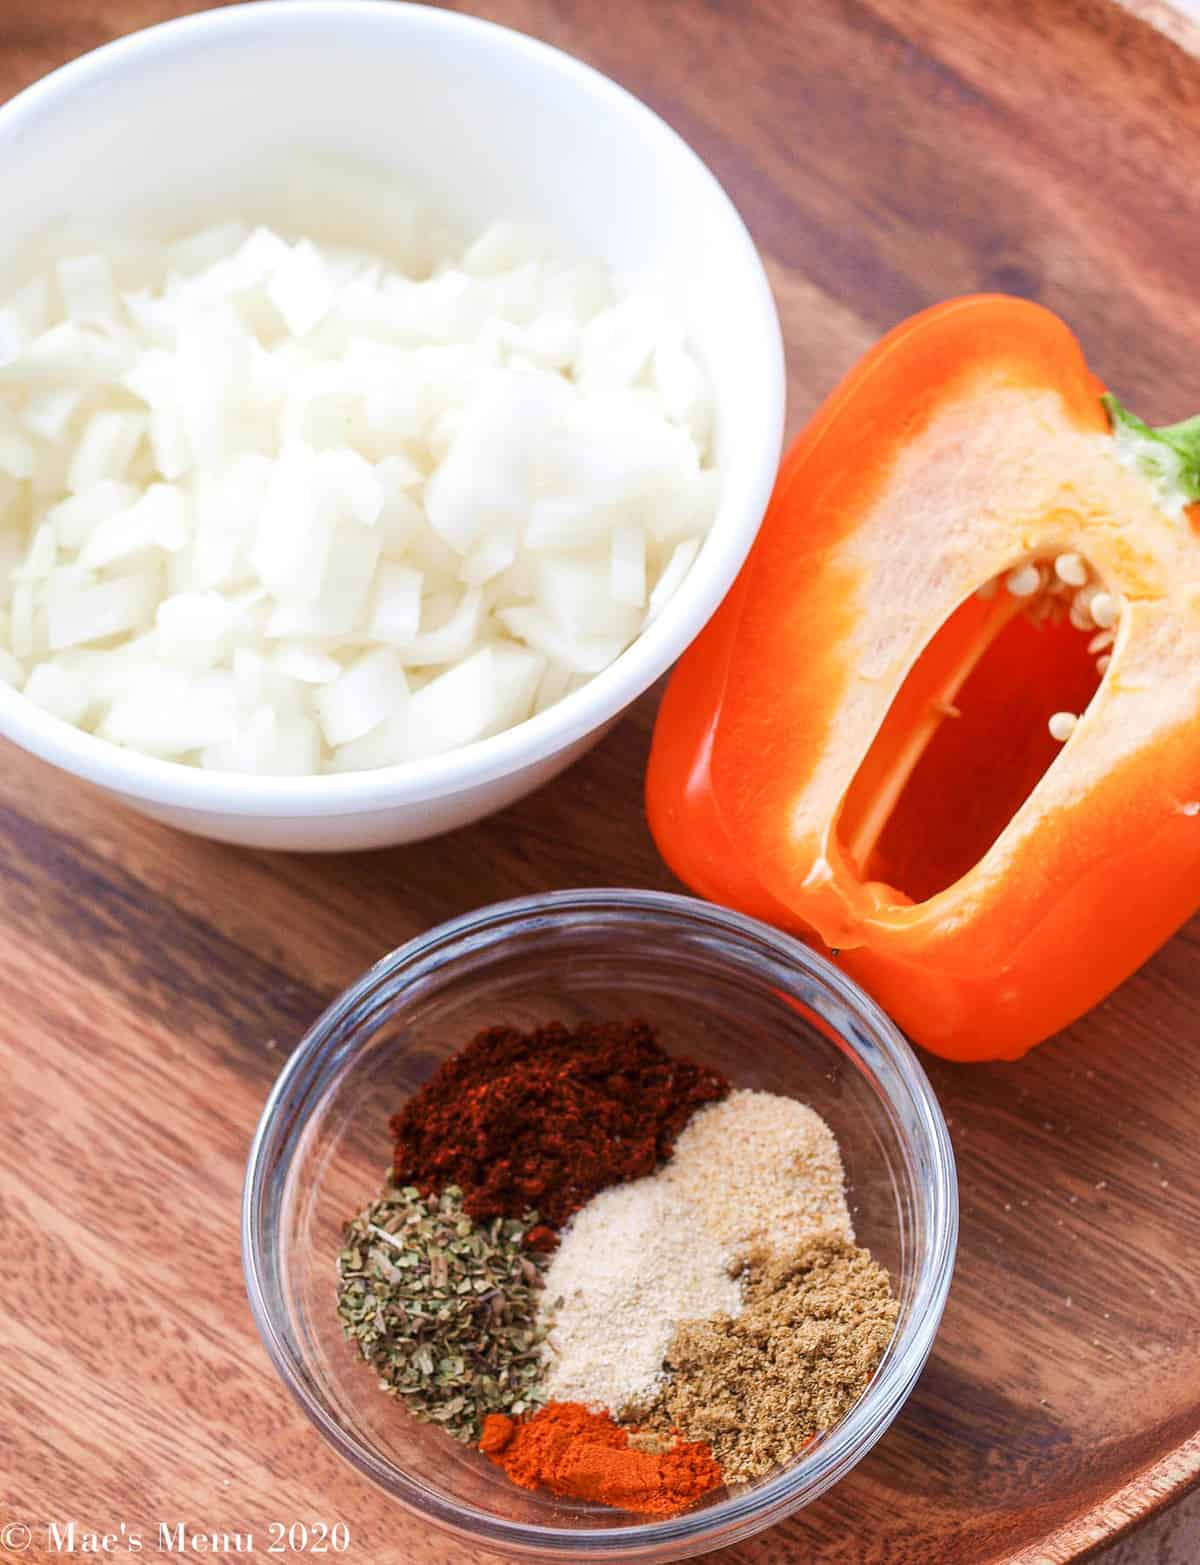 Chopped onions, half a pepper, and a small dish of spices for homemade taco seasoning.